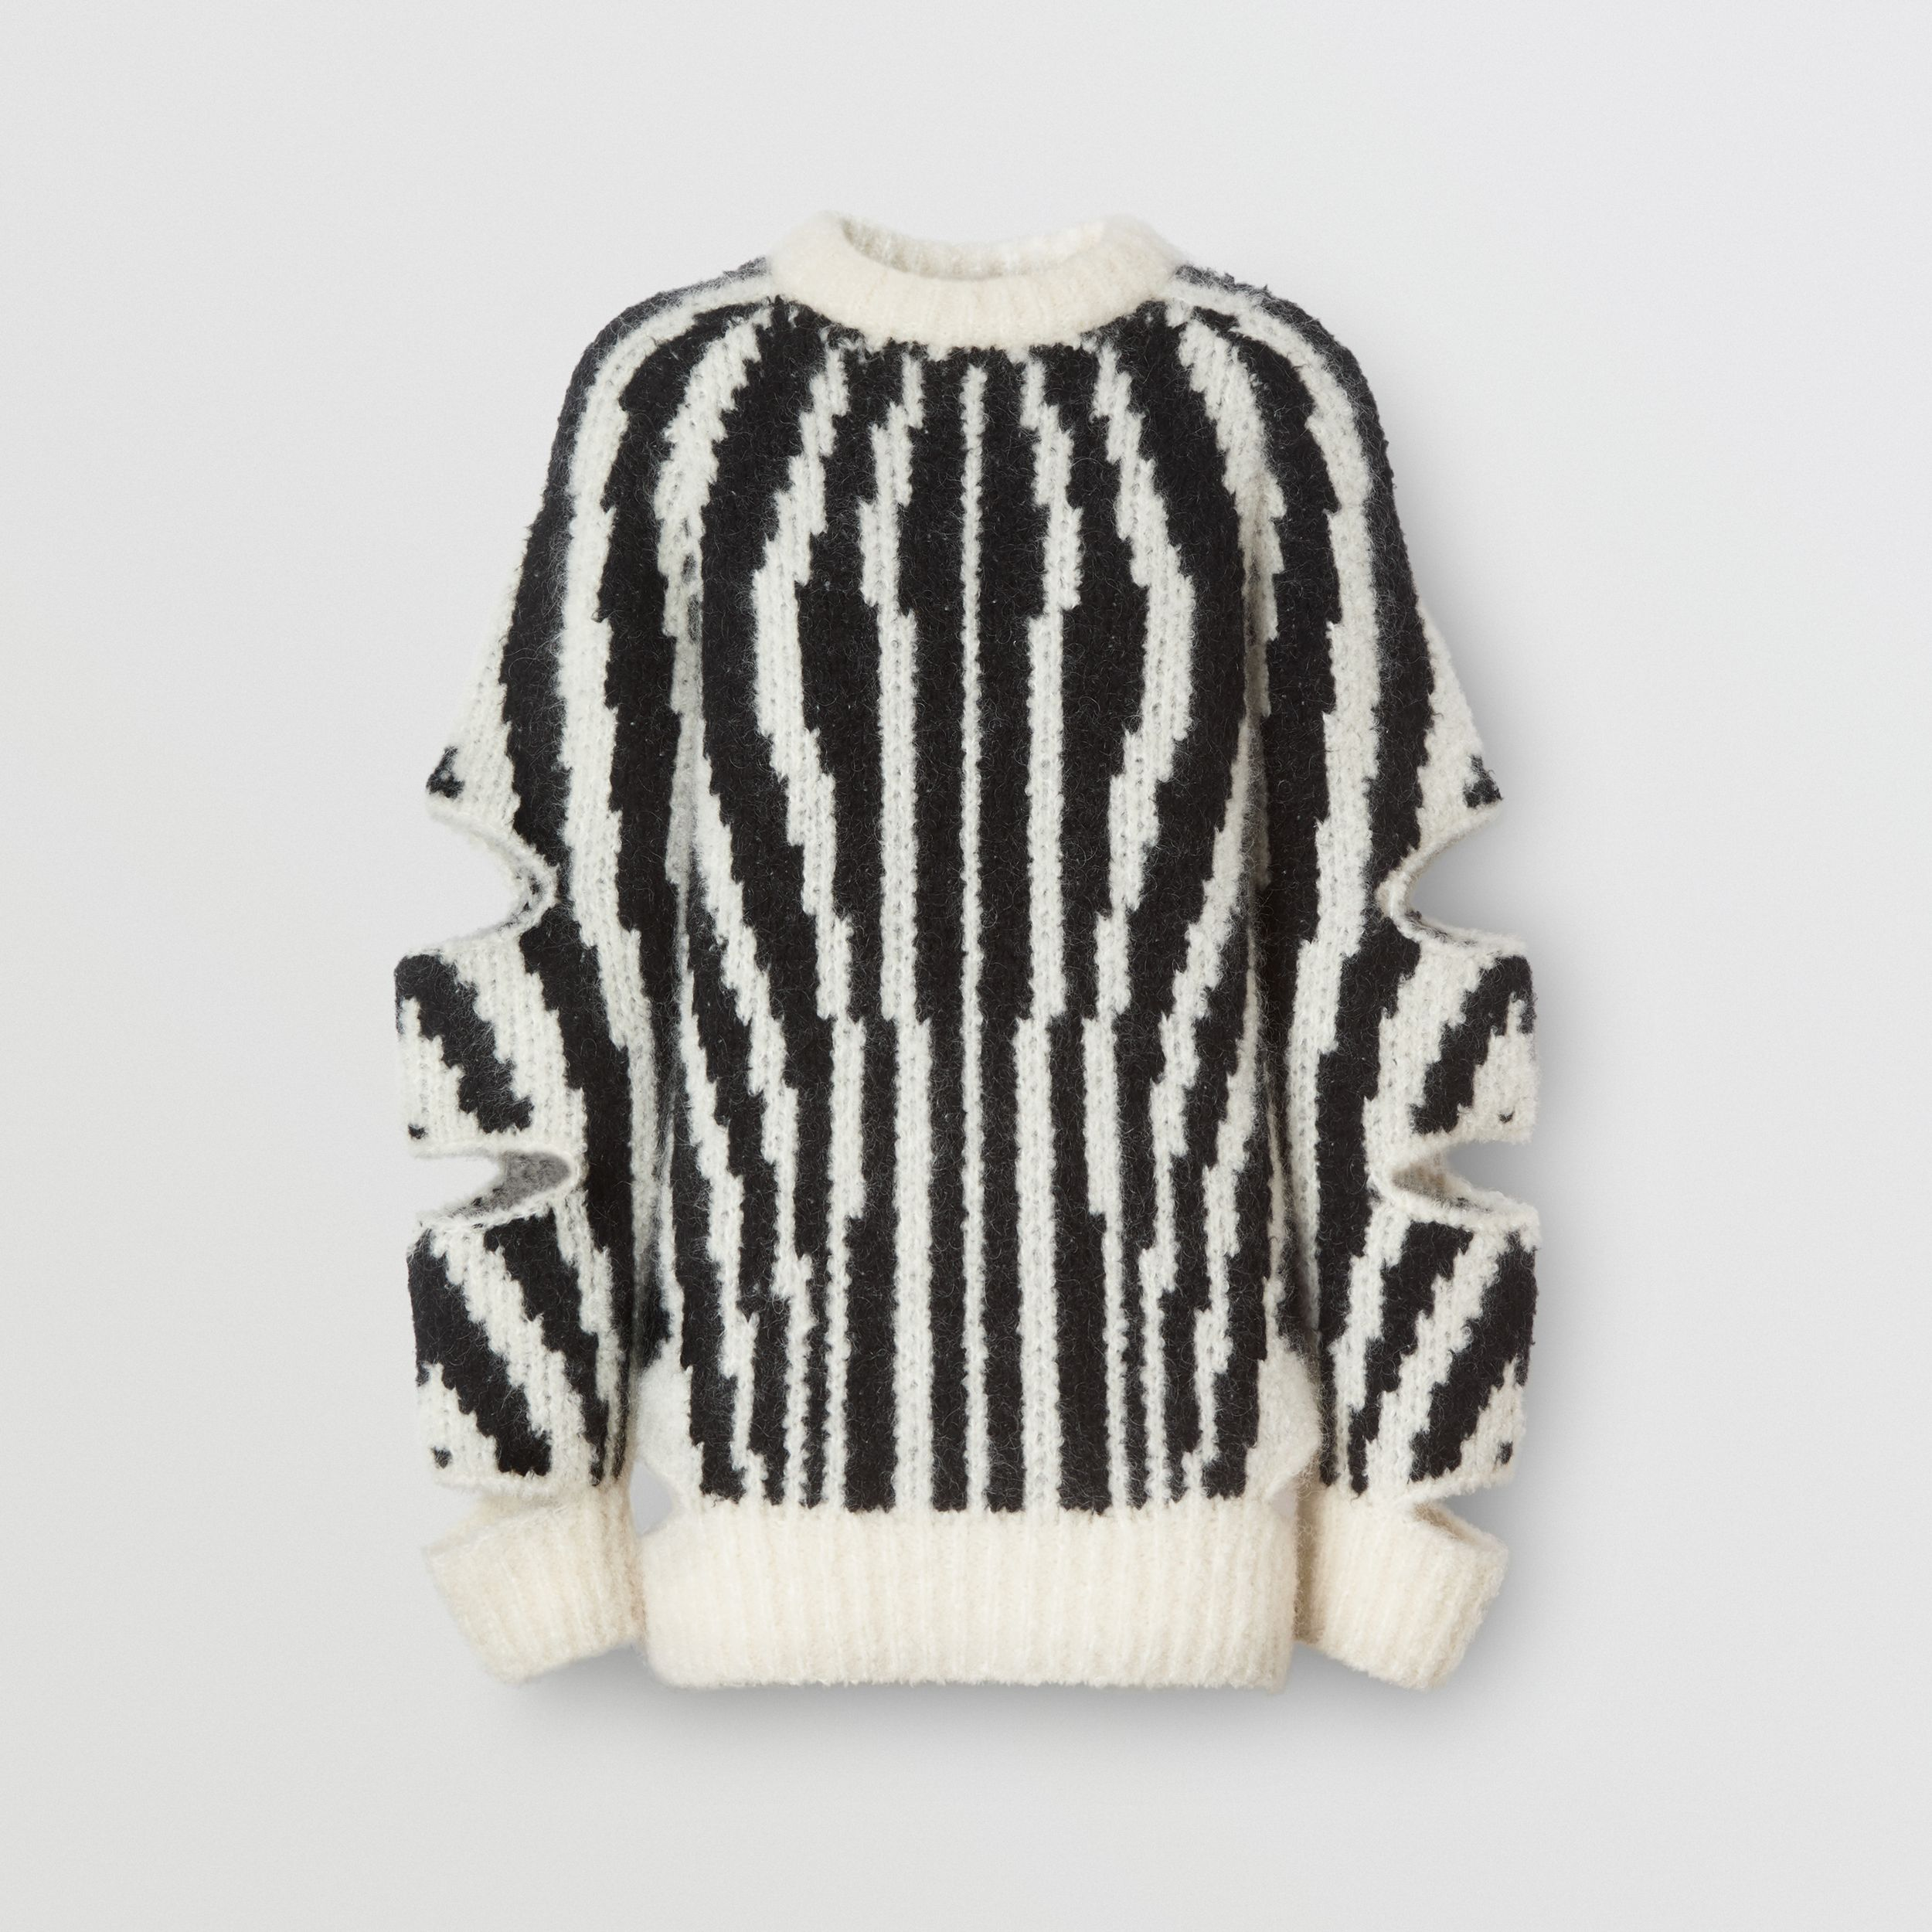 Cut-out Sleeve Wool Mohair Blend Jacquard Sweater | Burberry - 2